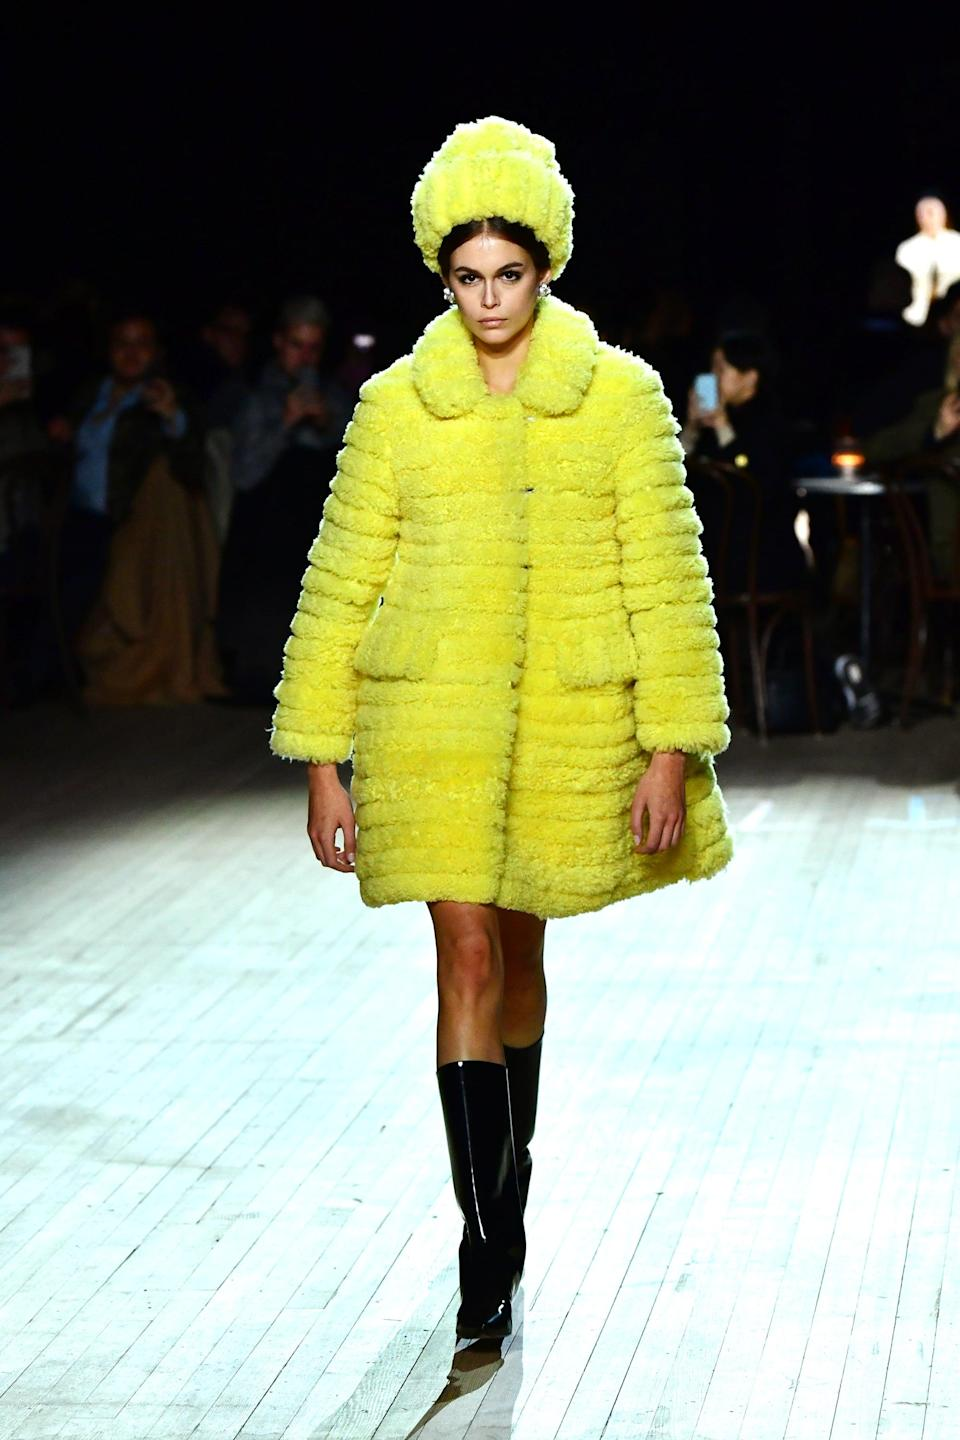 <p>Attending a Marc Jacobs show is like entering a wardrobe wonderland where only dreamy, over-the-top fashion exists. Incorporating whimsical, fantasy-like elements into your outfit is key - embrace floral prints, dramatic sleeves, and billowy skirts.</p>